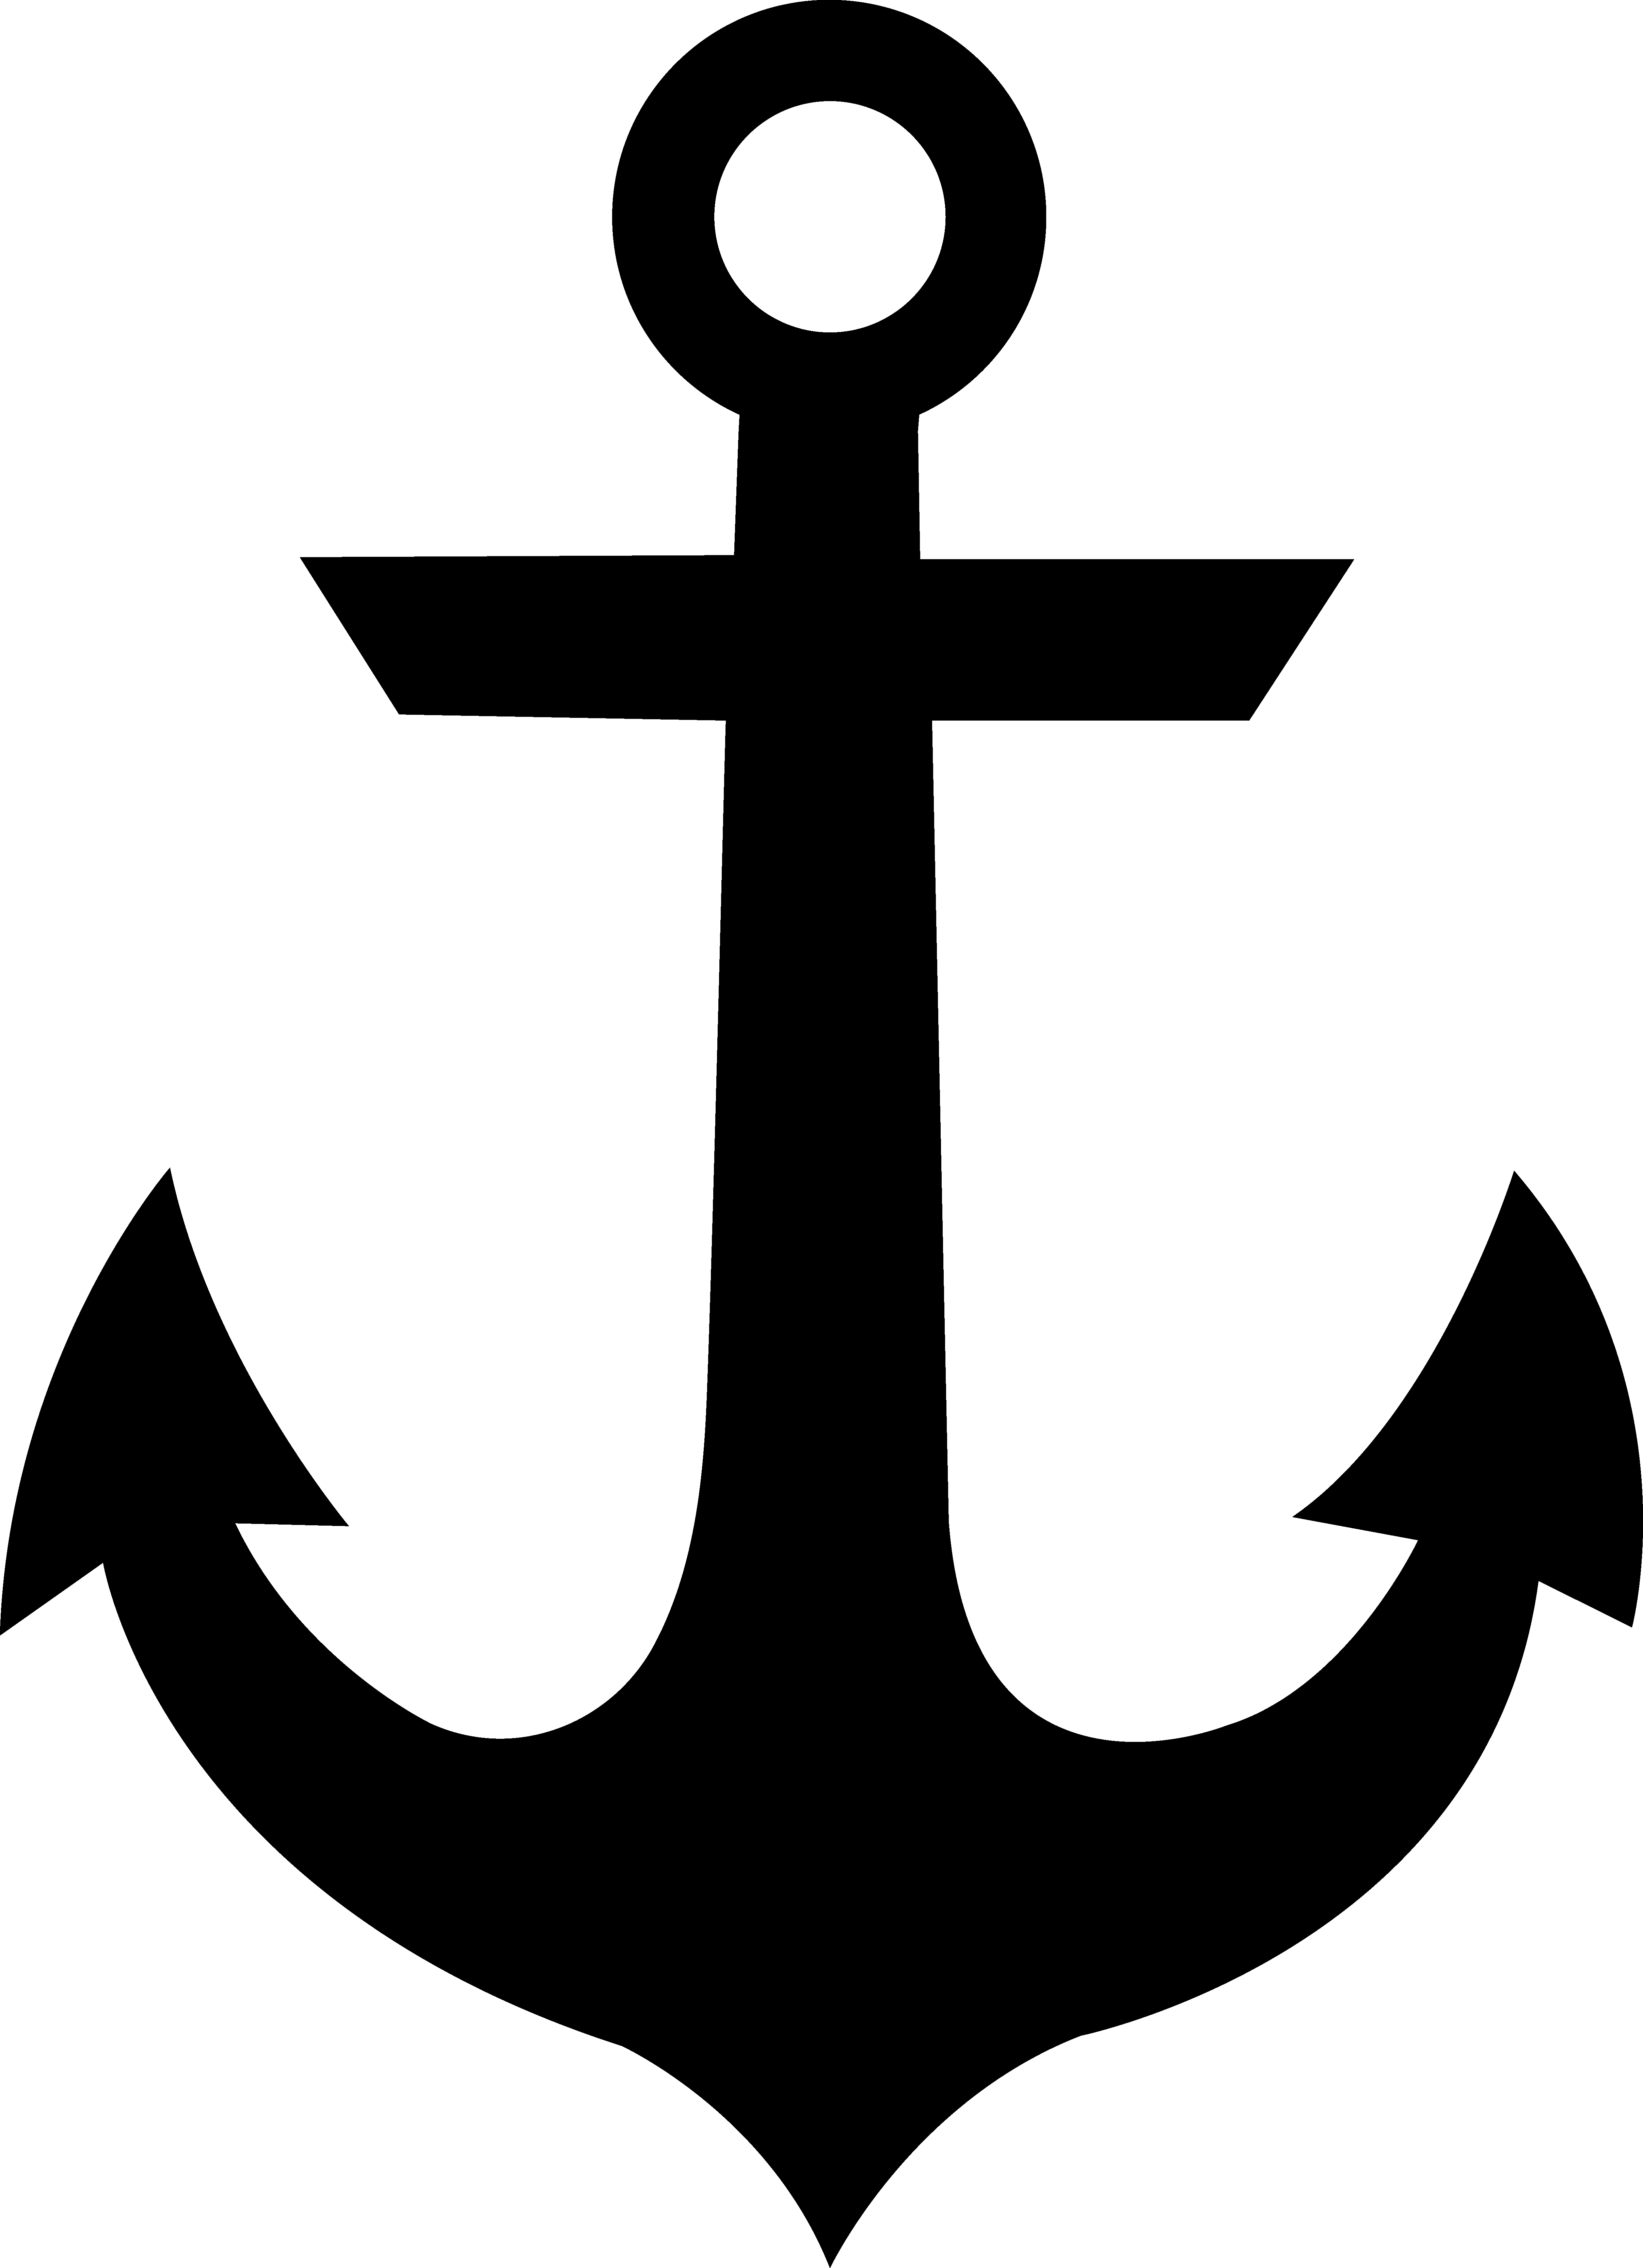 anchor png clipart best